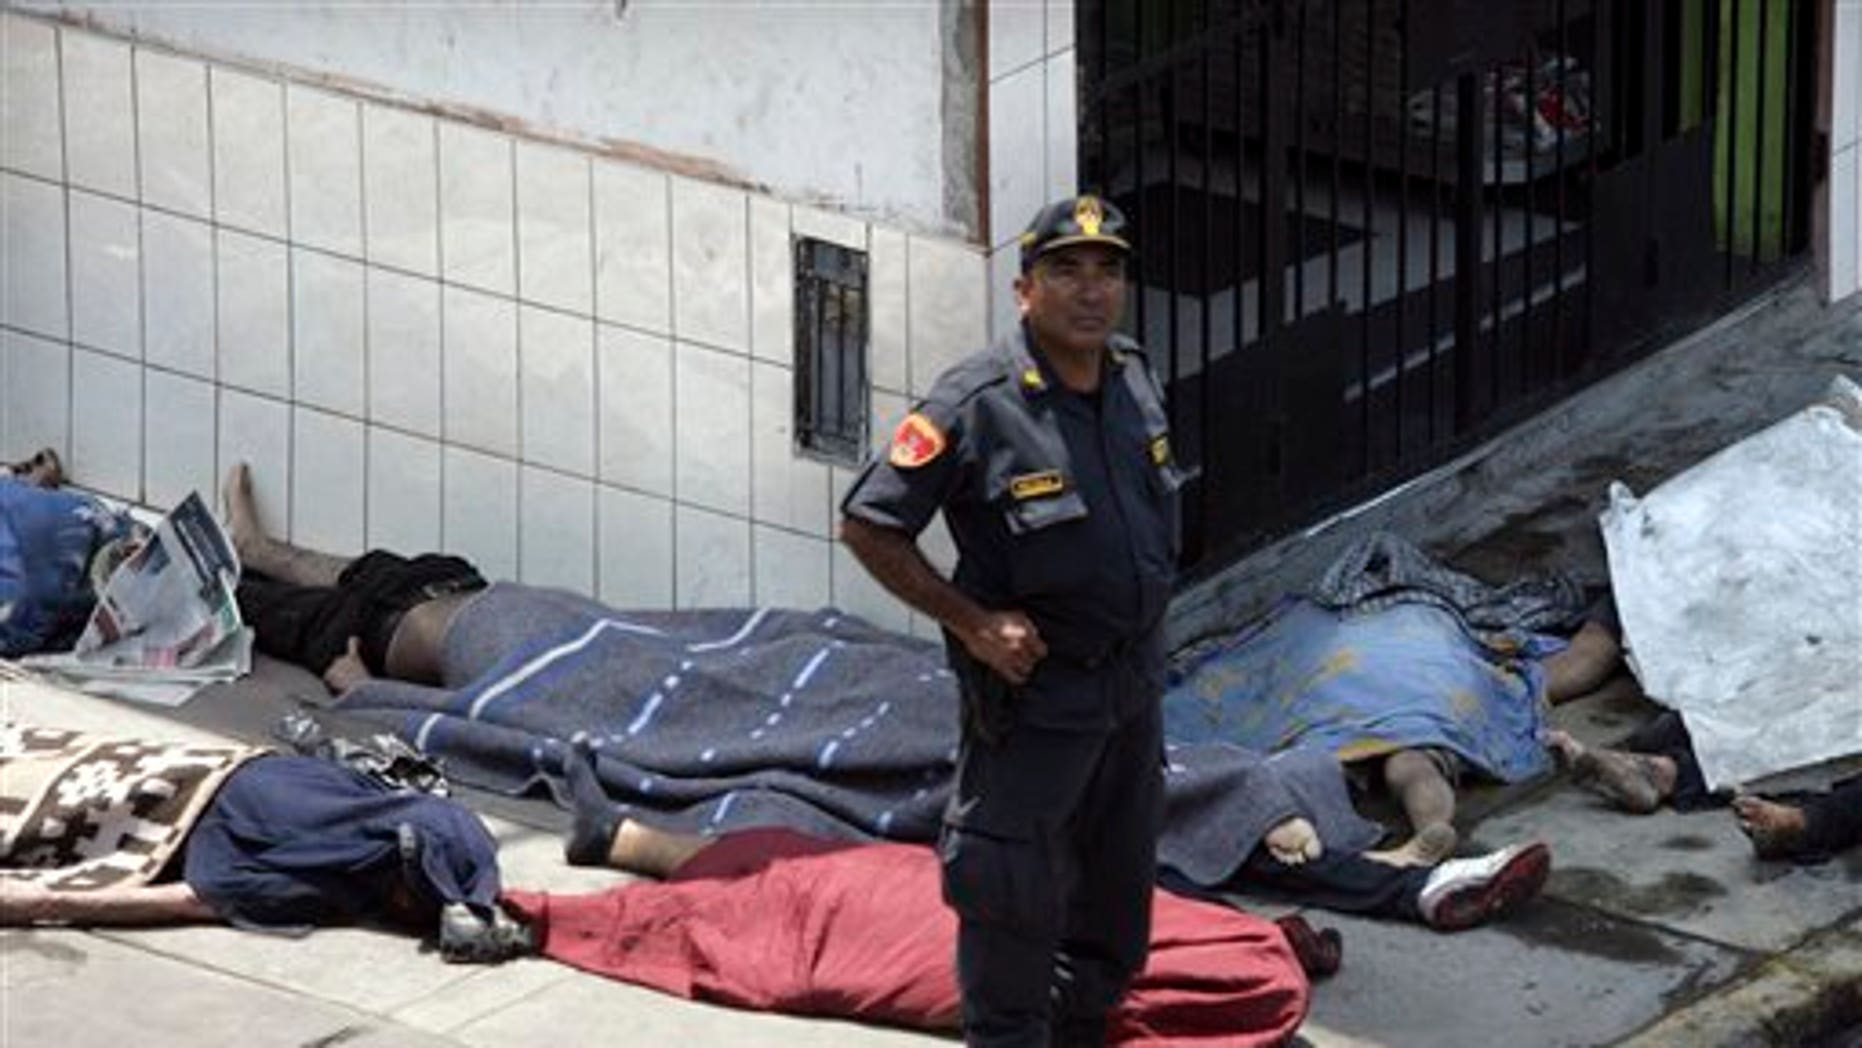 Jan. 28: A police officer stands next to a group of bodies outside the 'Christ is Love' center for drug and alcohol addicts in Lima, Peru.